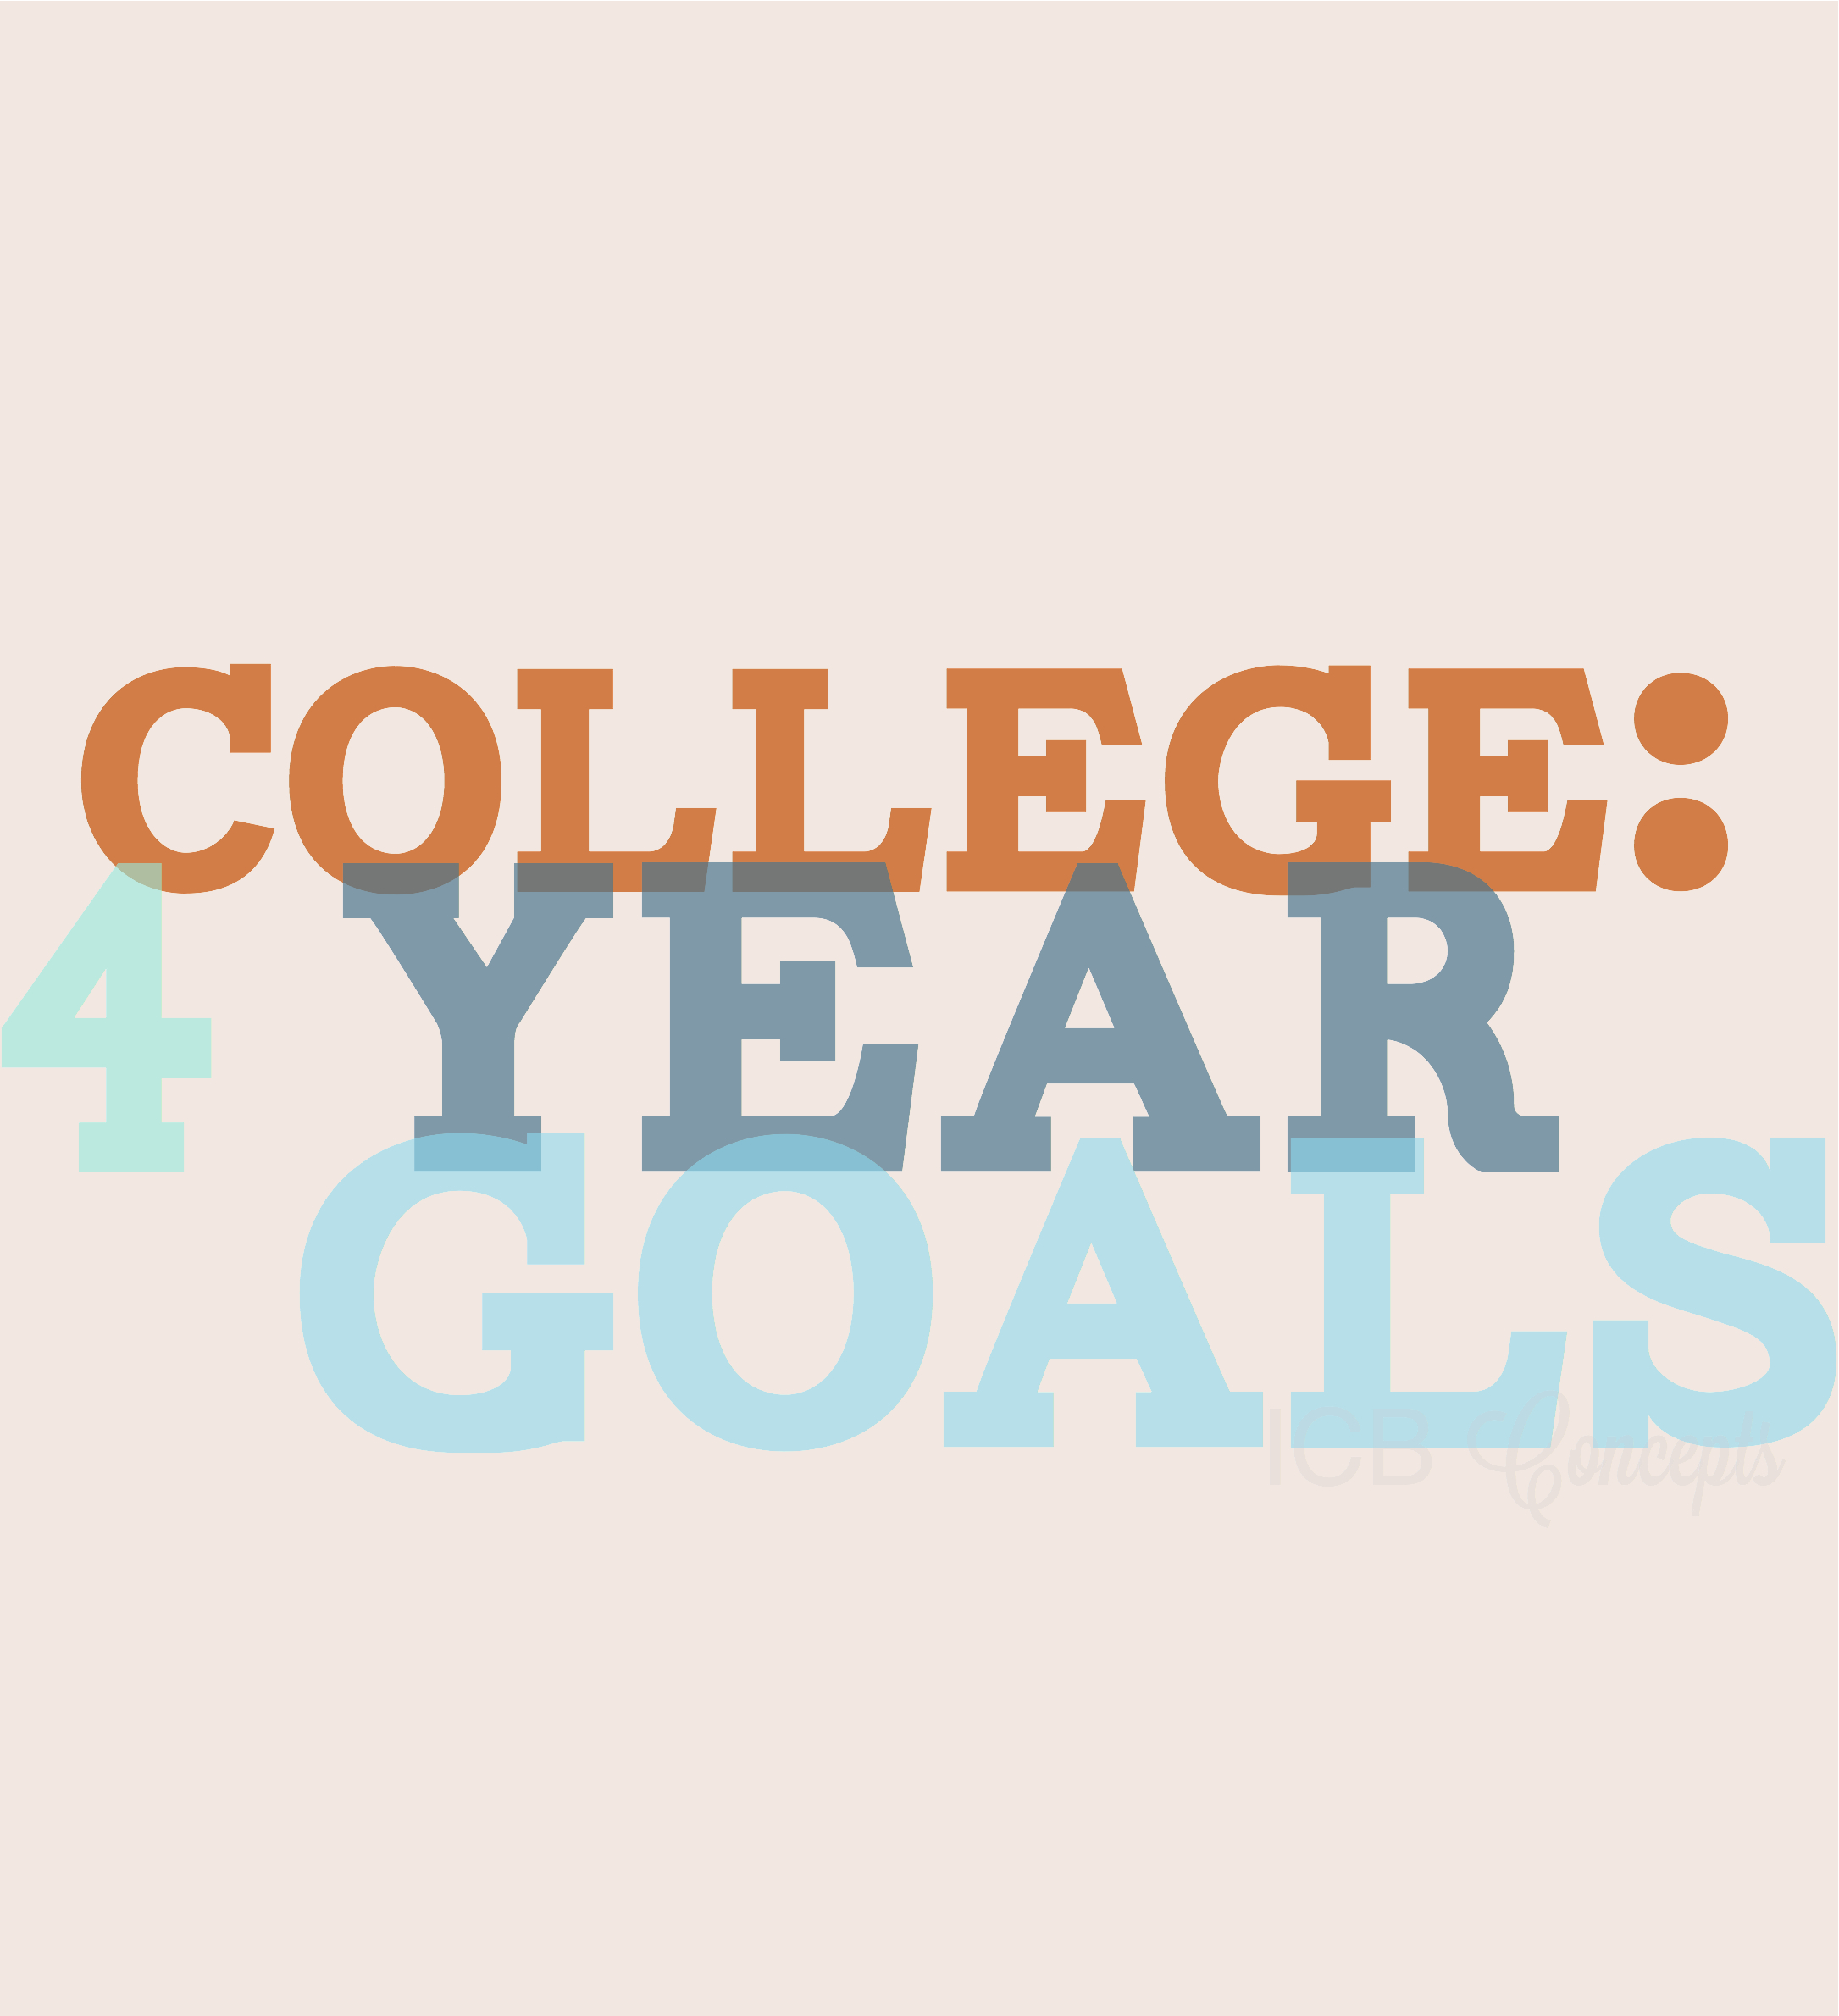 Creating 4 year plans for your college duration